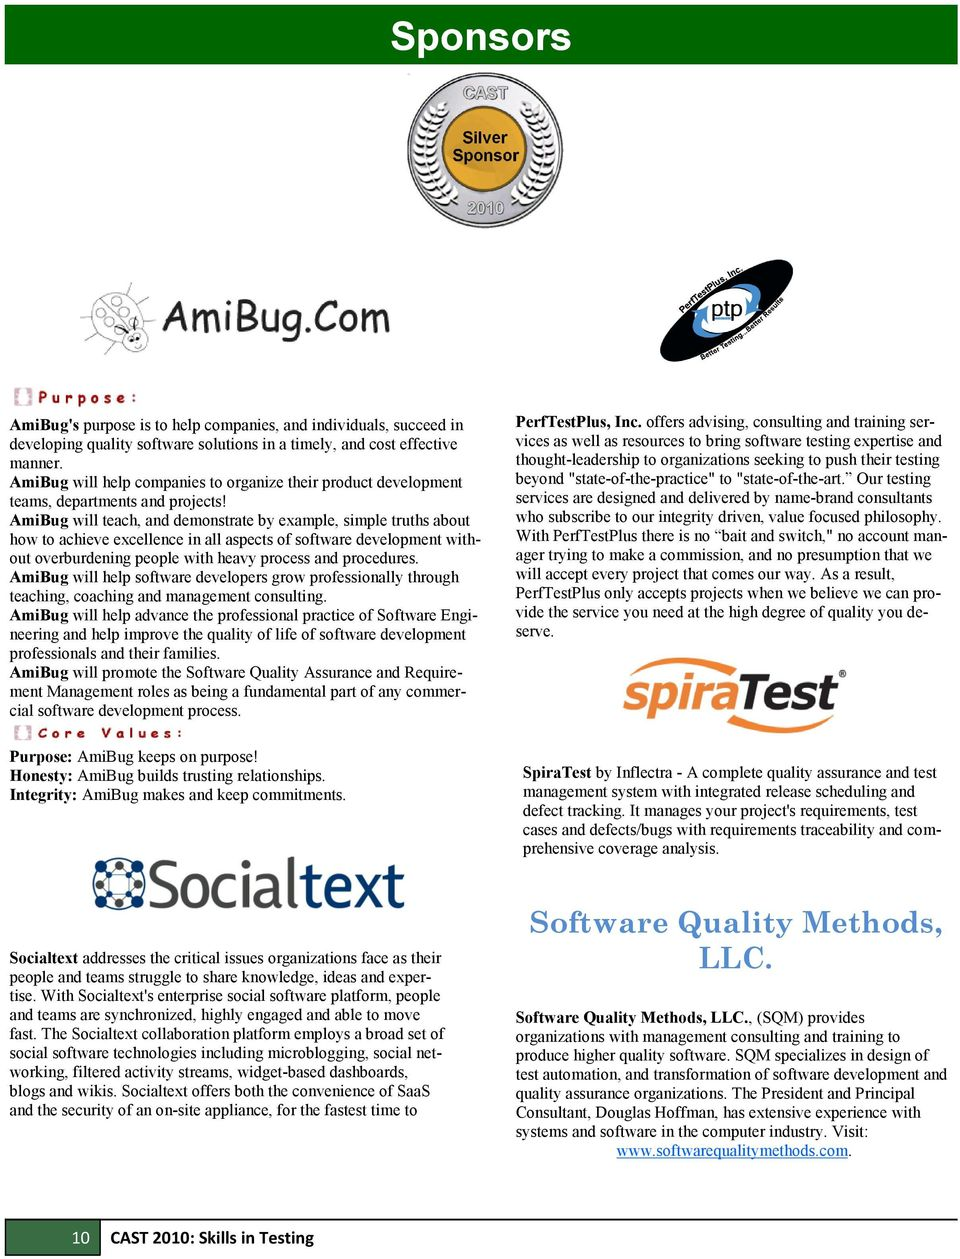 AmiBug will teach, and demonstrate by example, simple truths about how to achieve excellence in all aspects of software development without overburdening people with heavy process and procedures.